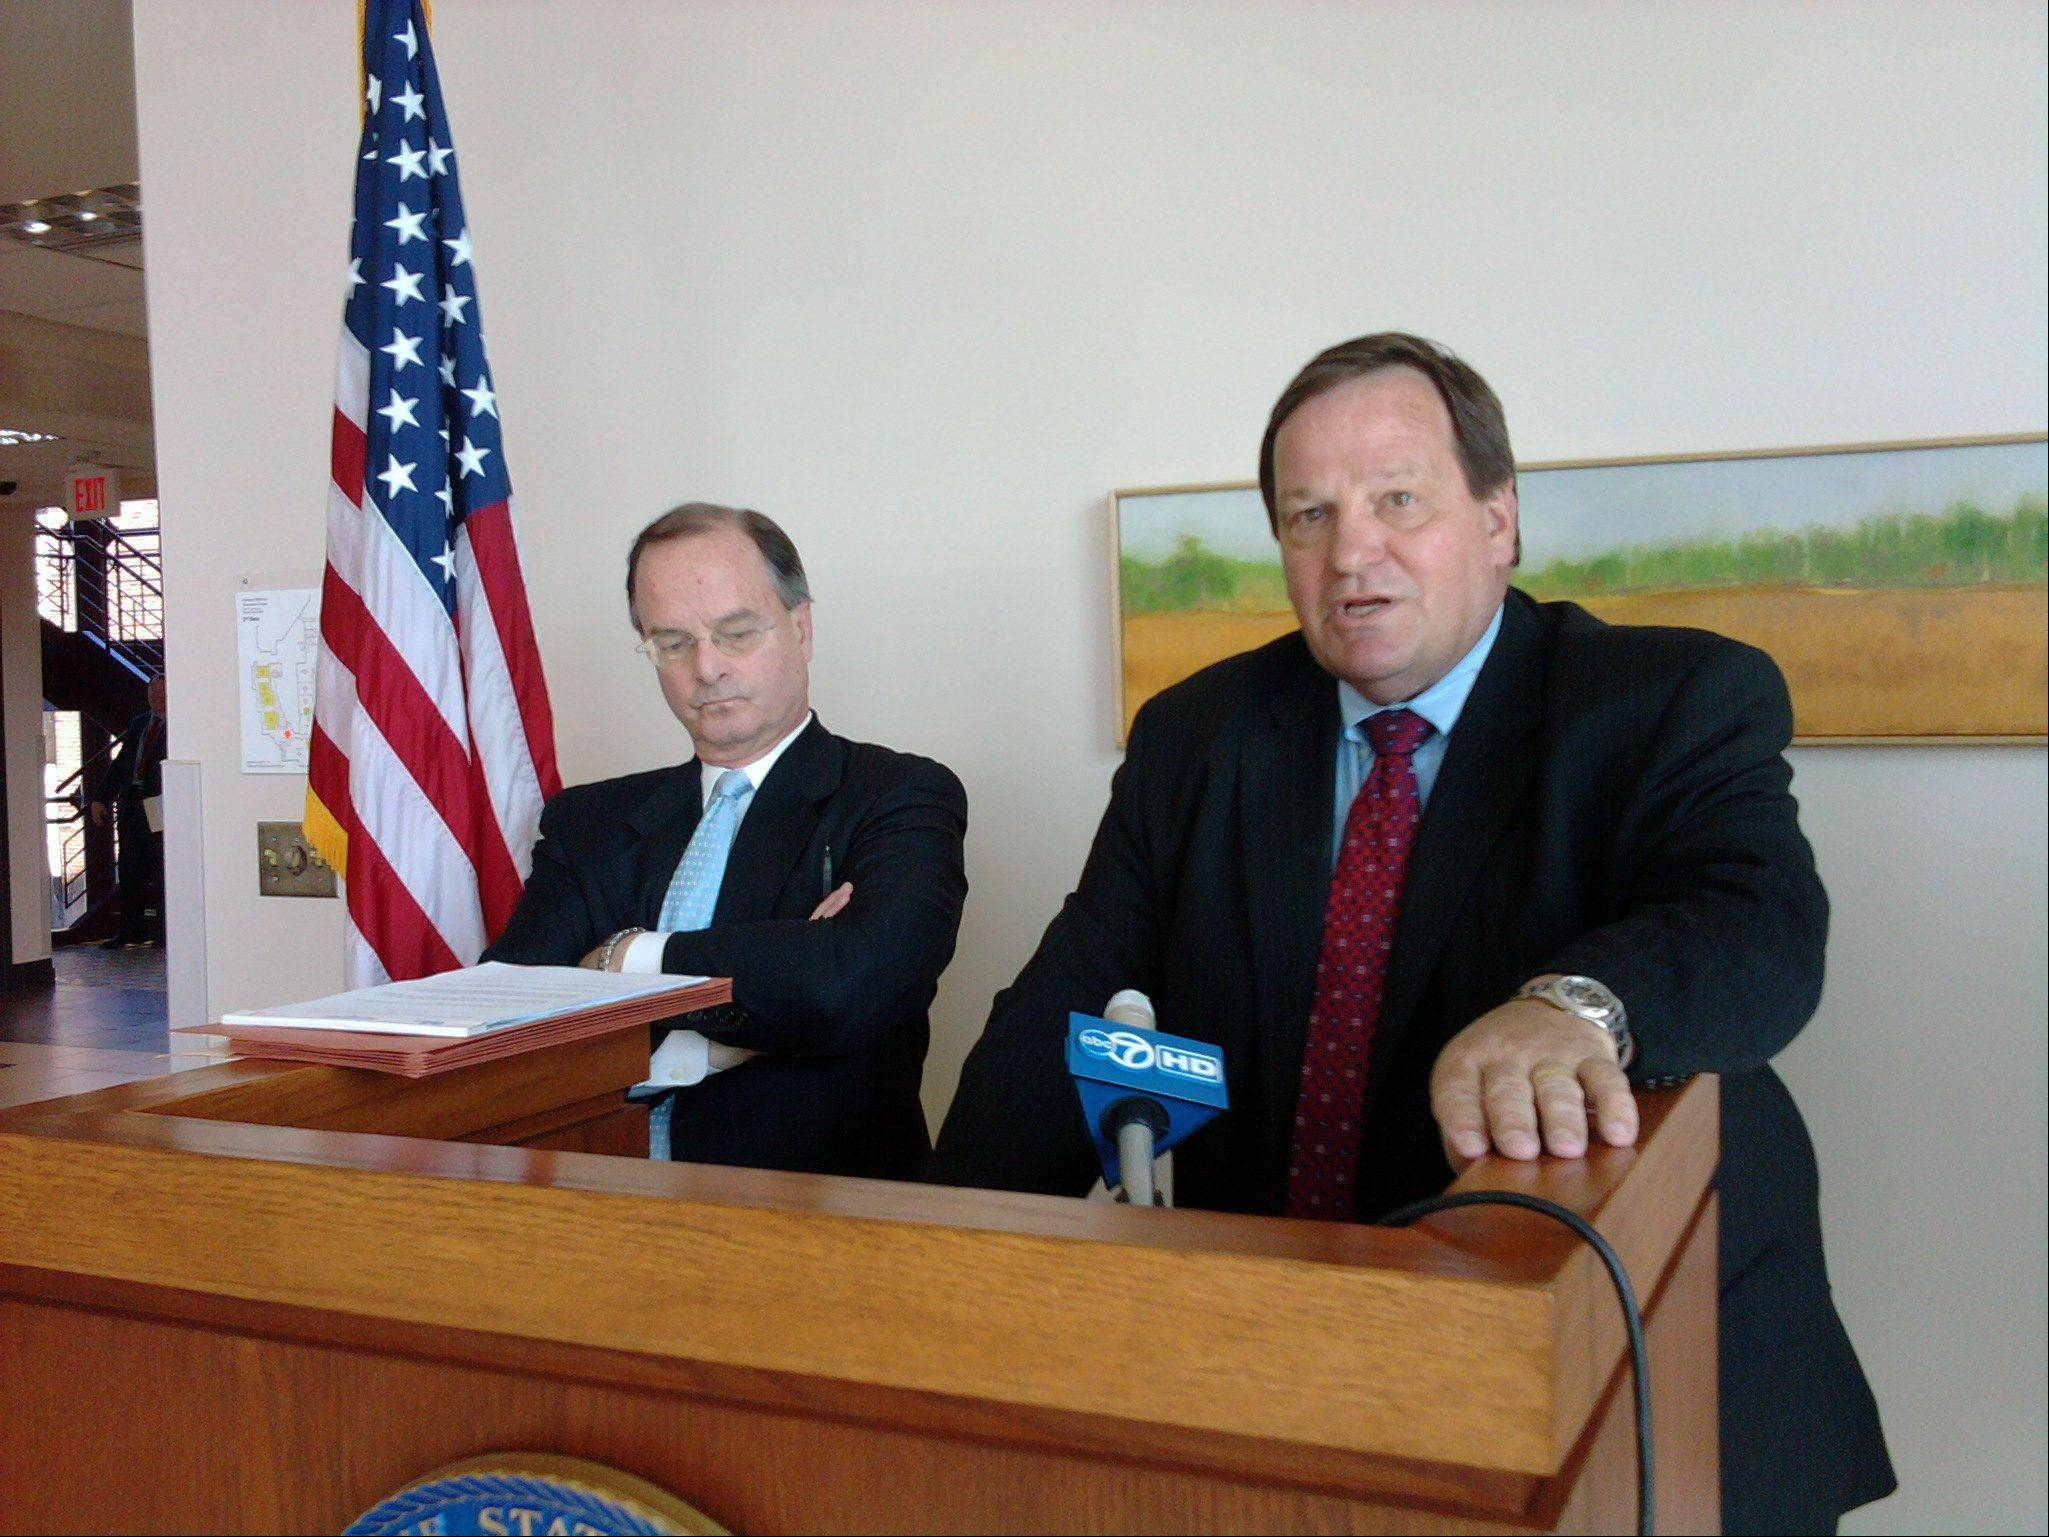 Special prosecutors Thomas McQueen, left, and Henry Tonigan announce charges against McHenry County State's Attorney Louis Bianchi in February 2011 in Woodstock.